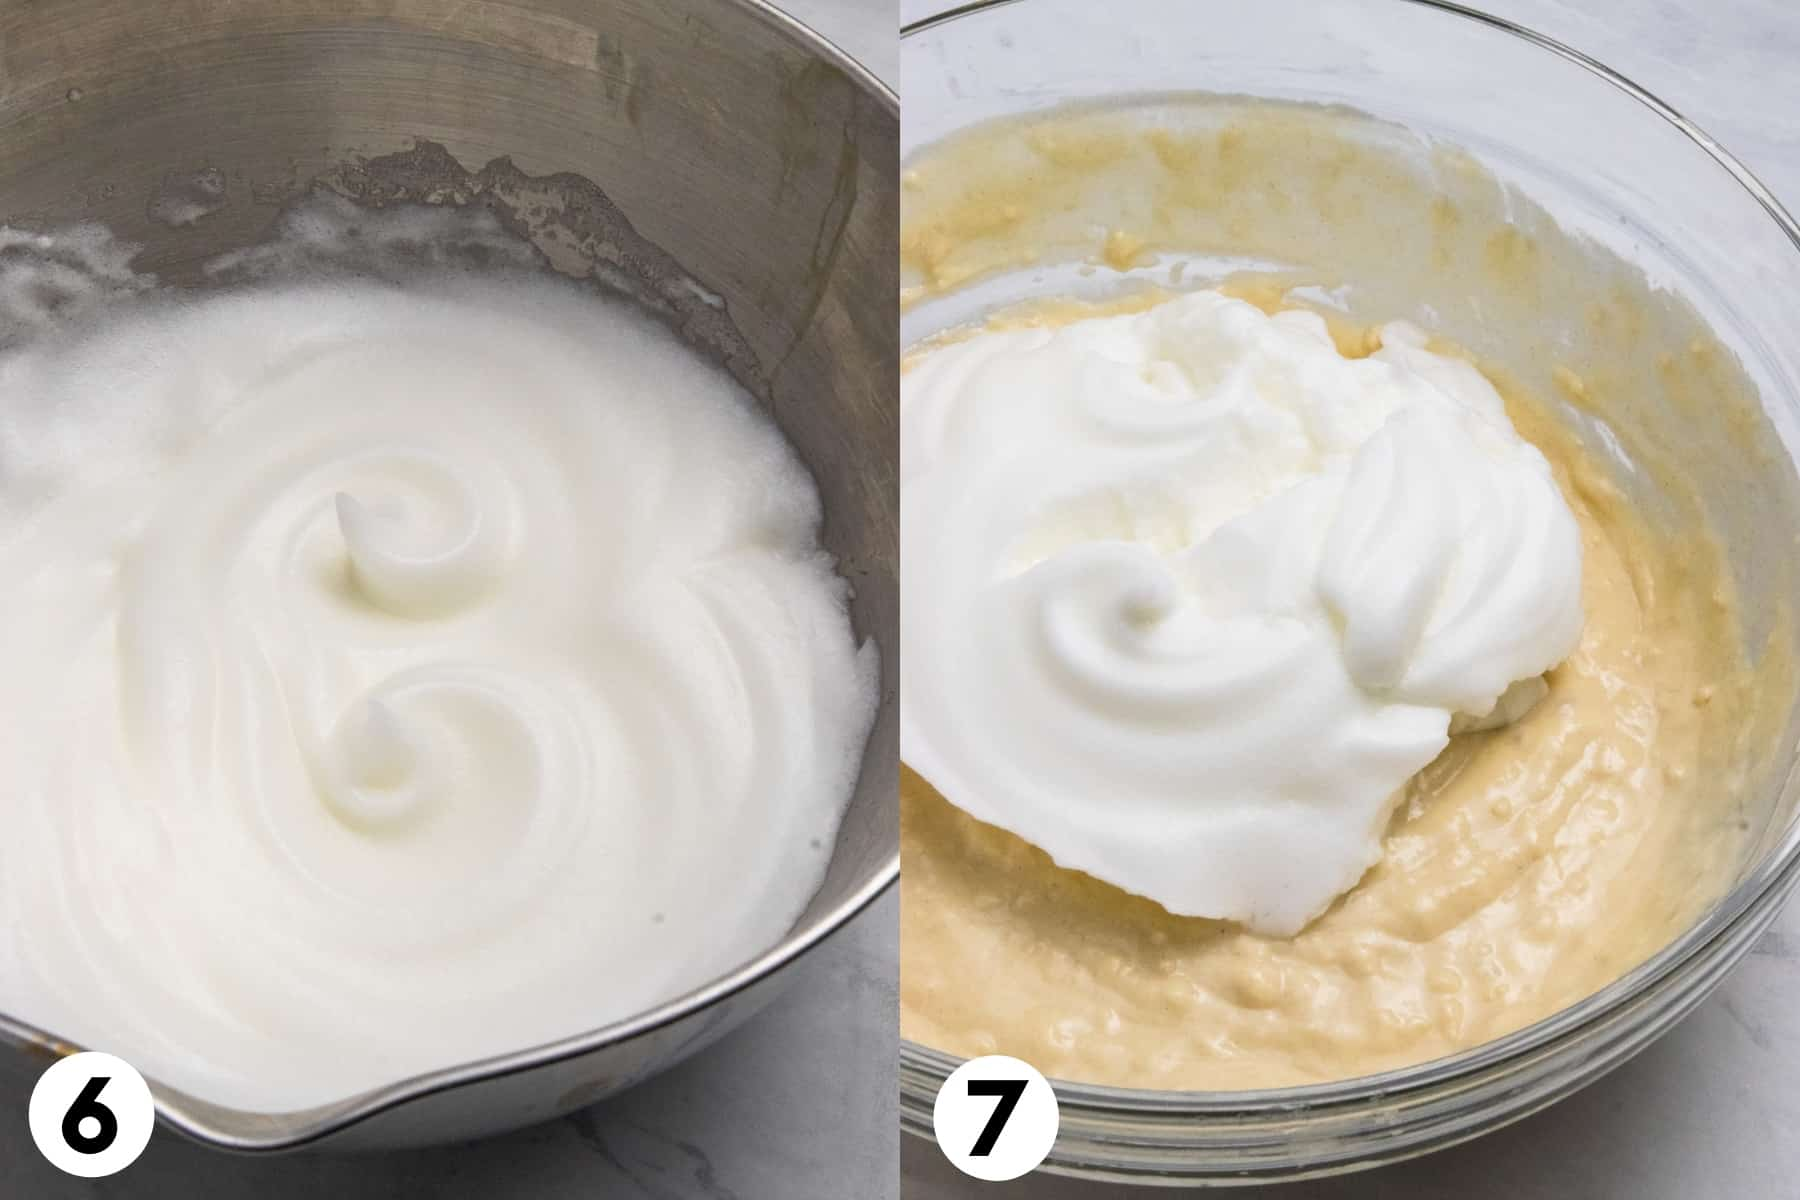 Egg whites whipped to stiff peaks and added to pancake batter.